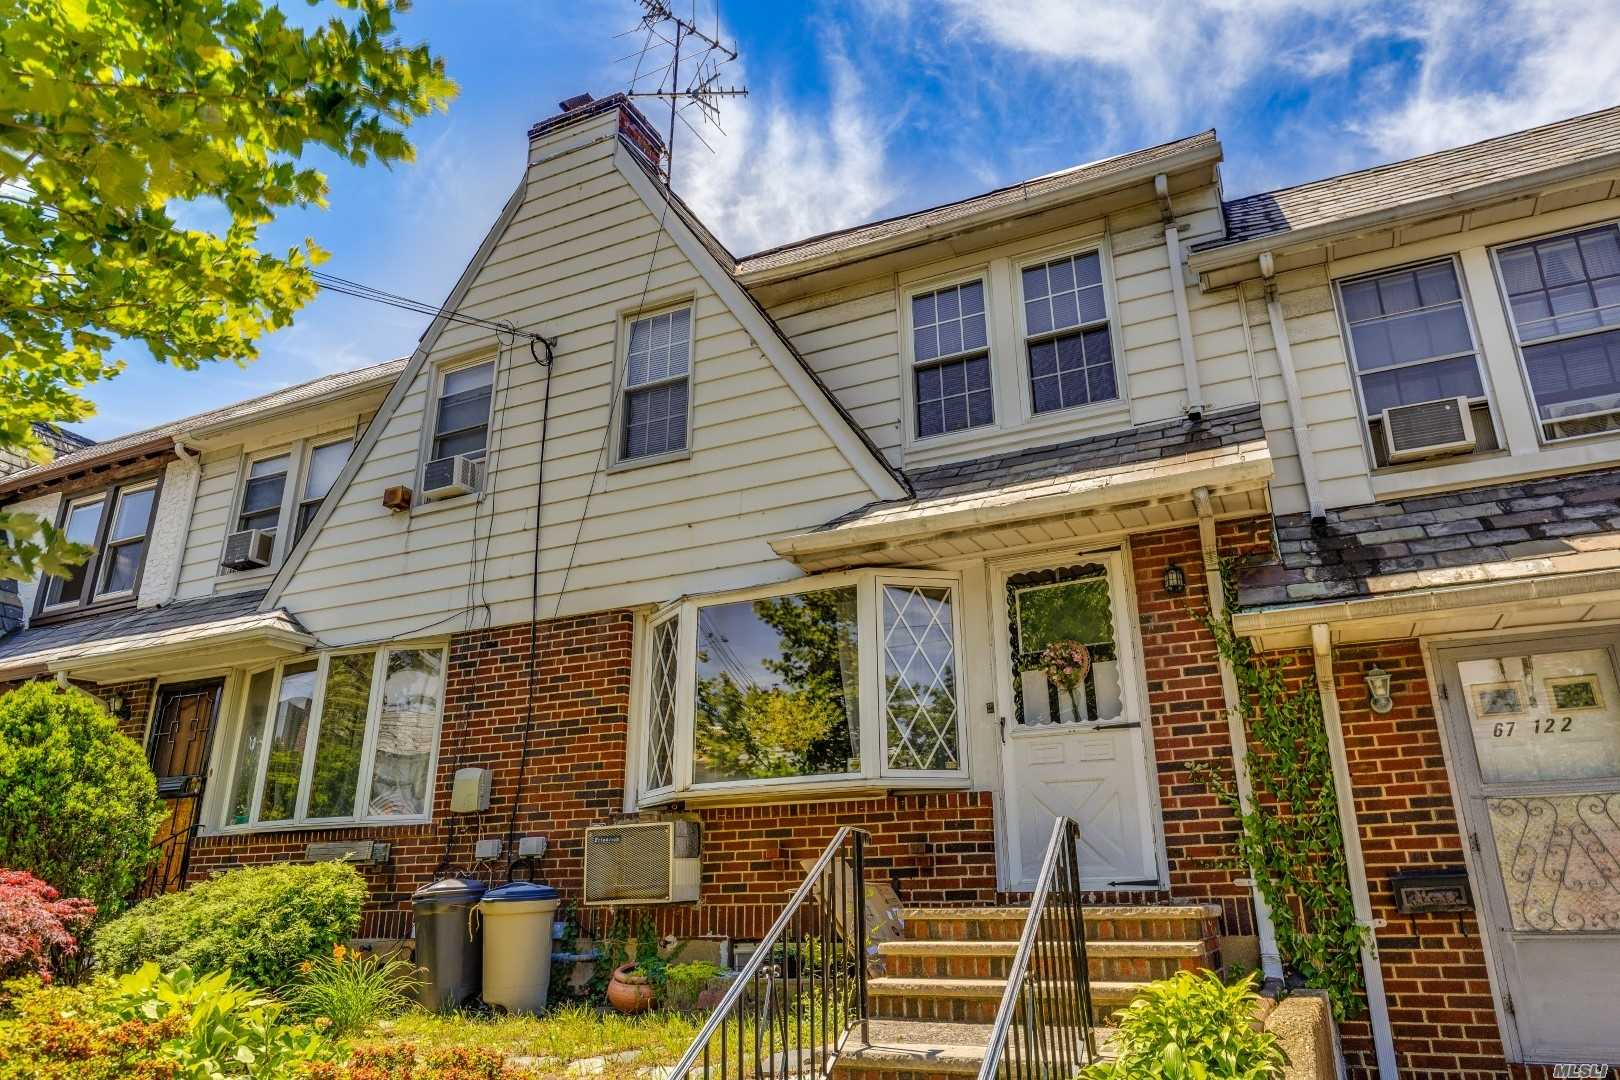 Bring Your Imagination To This Lovely Townhouse Located On A Quiet Tree Lined Street In The Heart Of Forest Hills. Convenient To Transportation, Shopping, Restaurants And Manhattan. 3 Bedrooms, 1 Bathroom, Full Basement, One Car Detached Garage, Hardwood Floors And Many Beautiful Original Features Throughout.